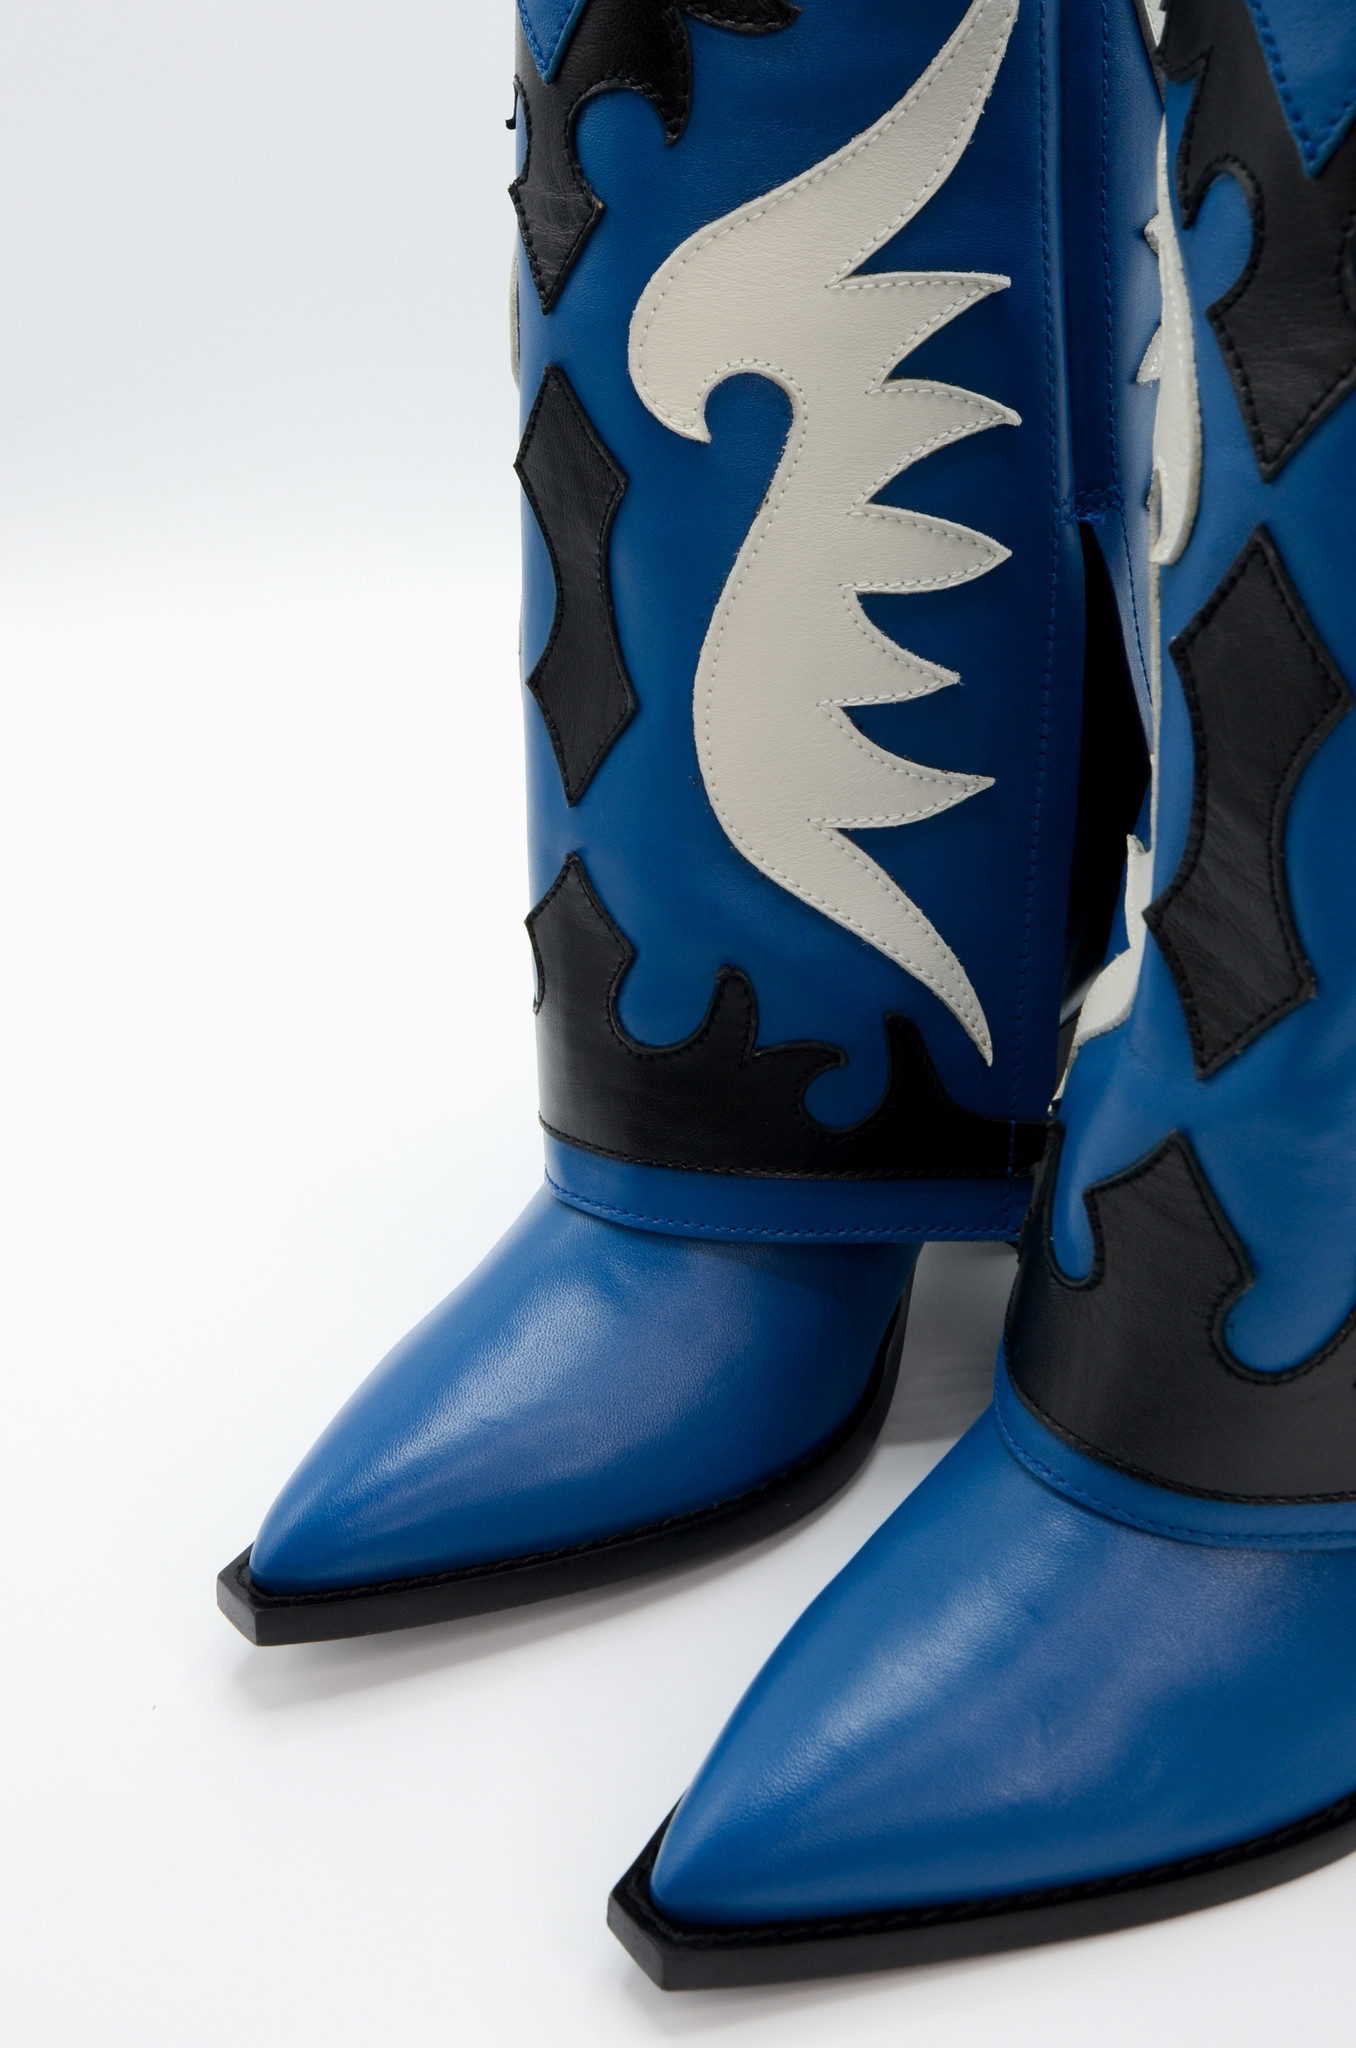 WESTERN STYLE BOOT IN BLUE-6